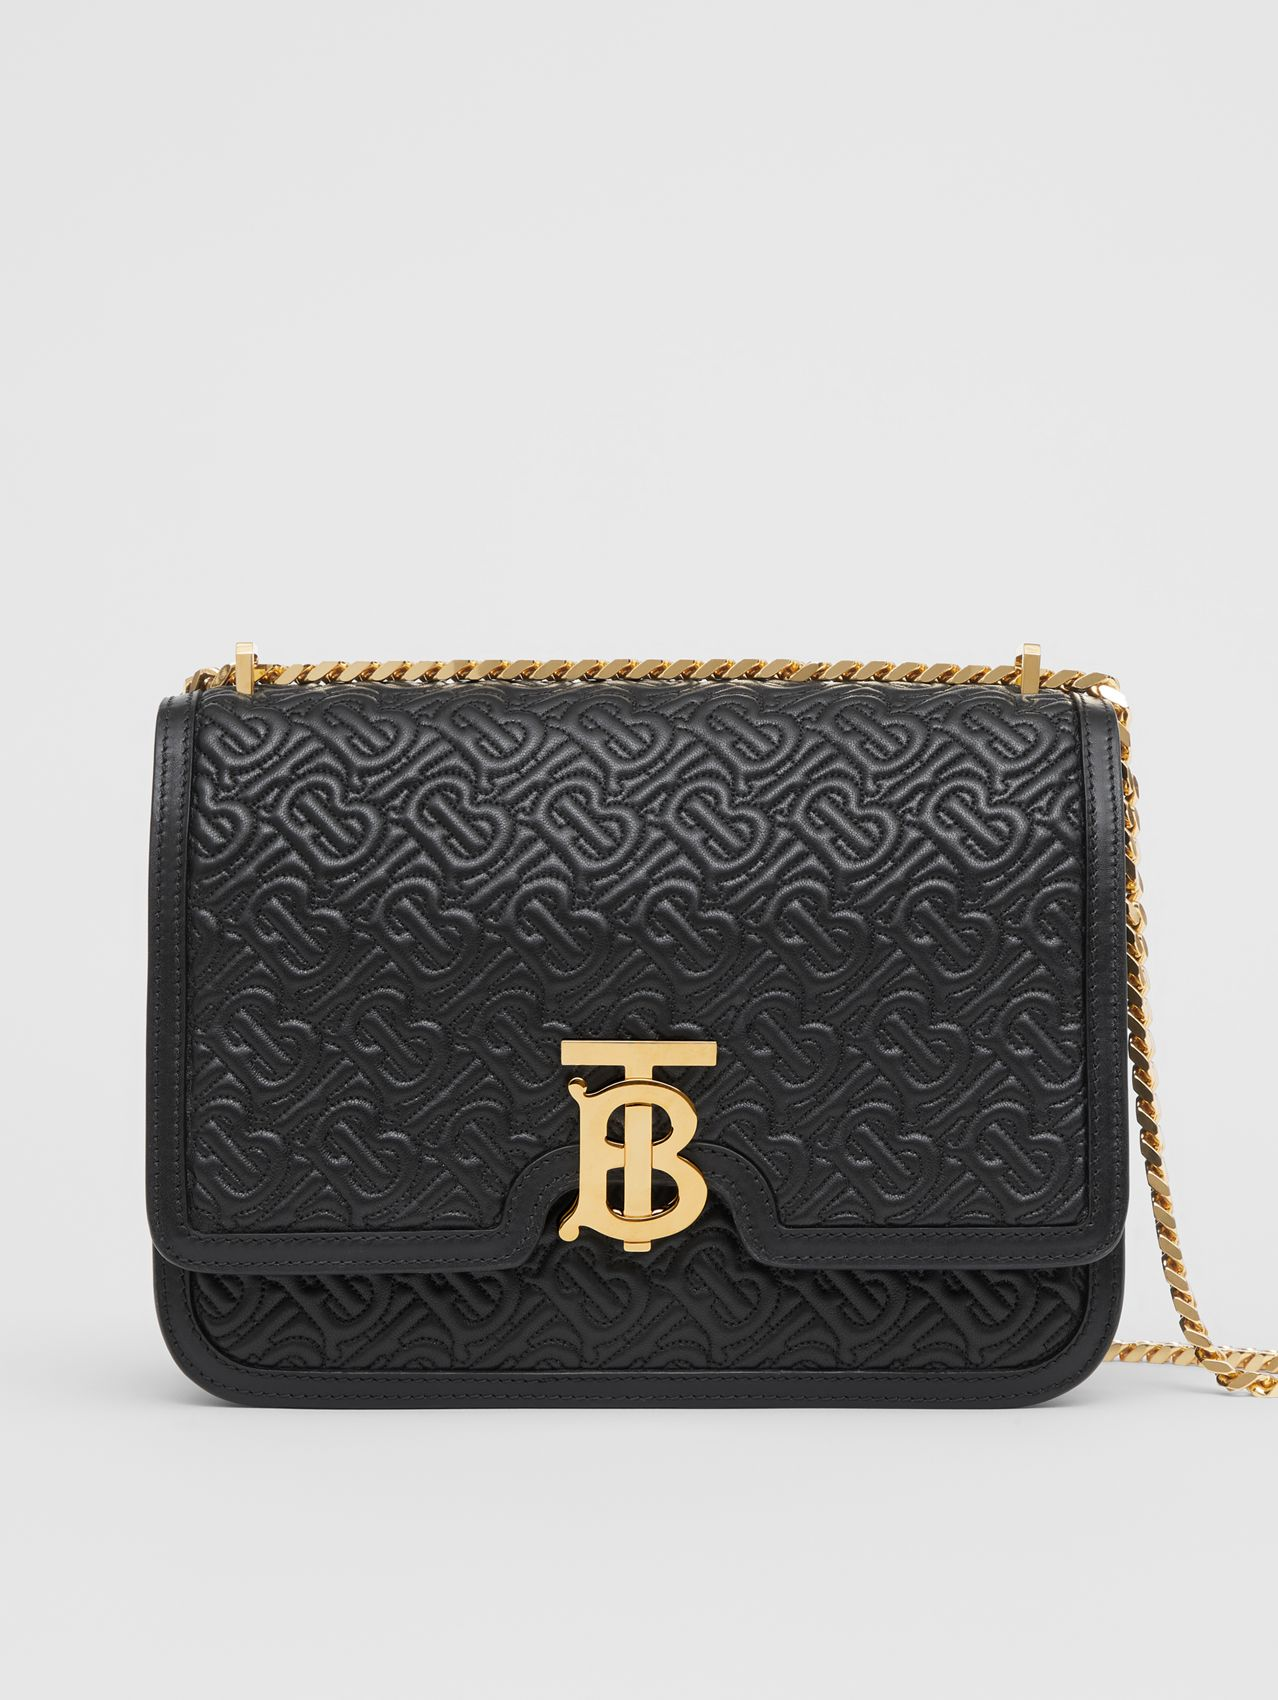 Medium Quilted Monogram Lambskin TB Bag in Black